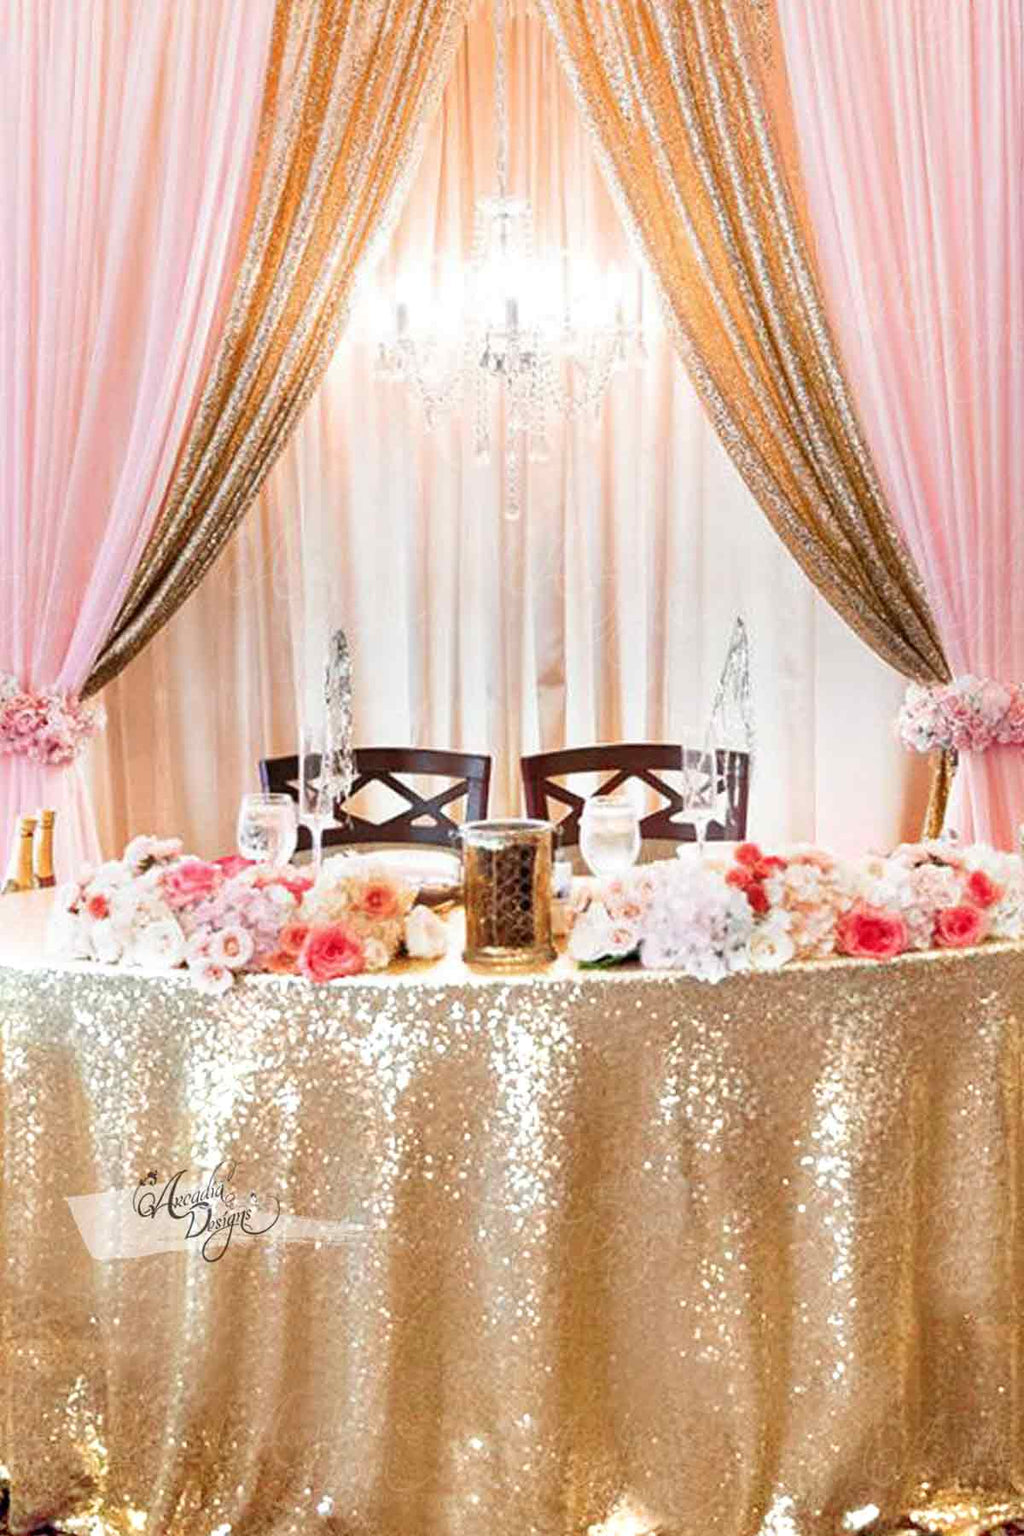 Arcadia Designs Bright Gold Sequin Sweet Table cloth